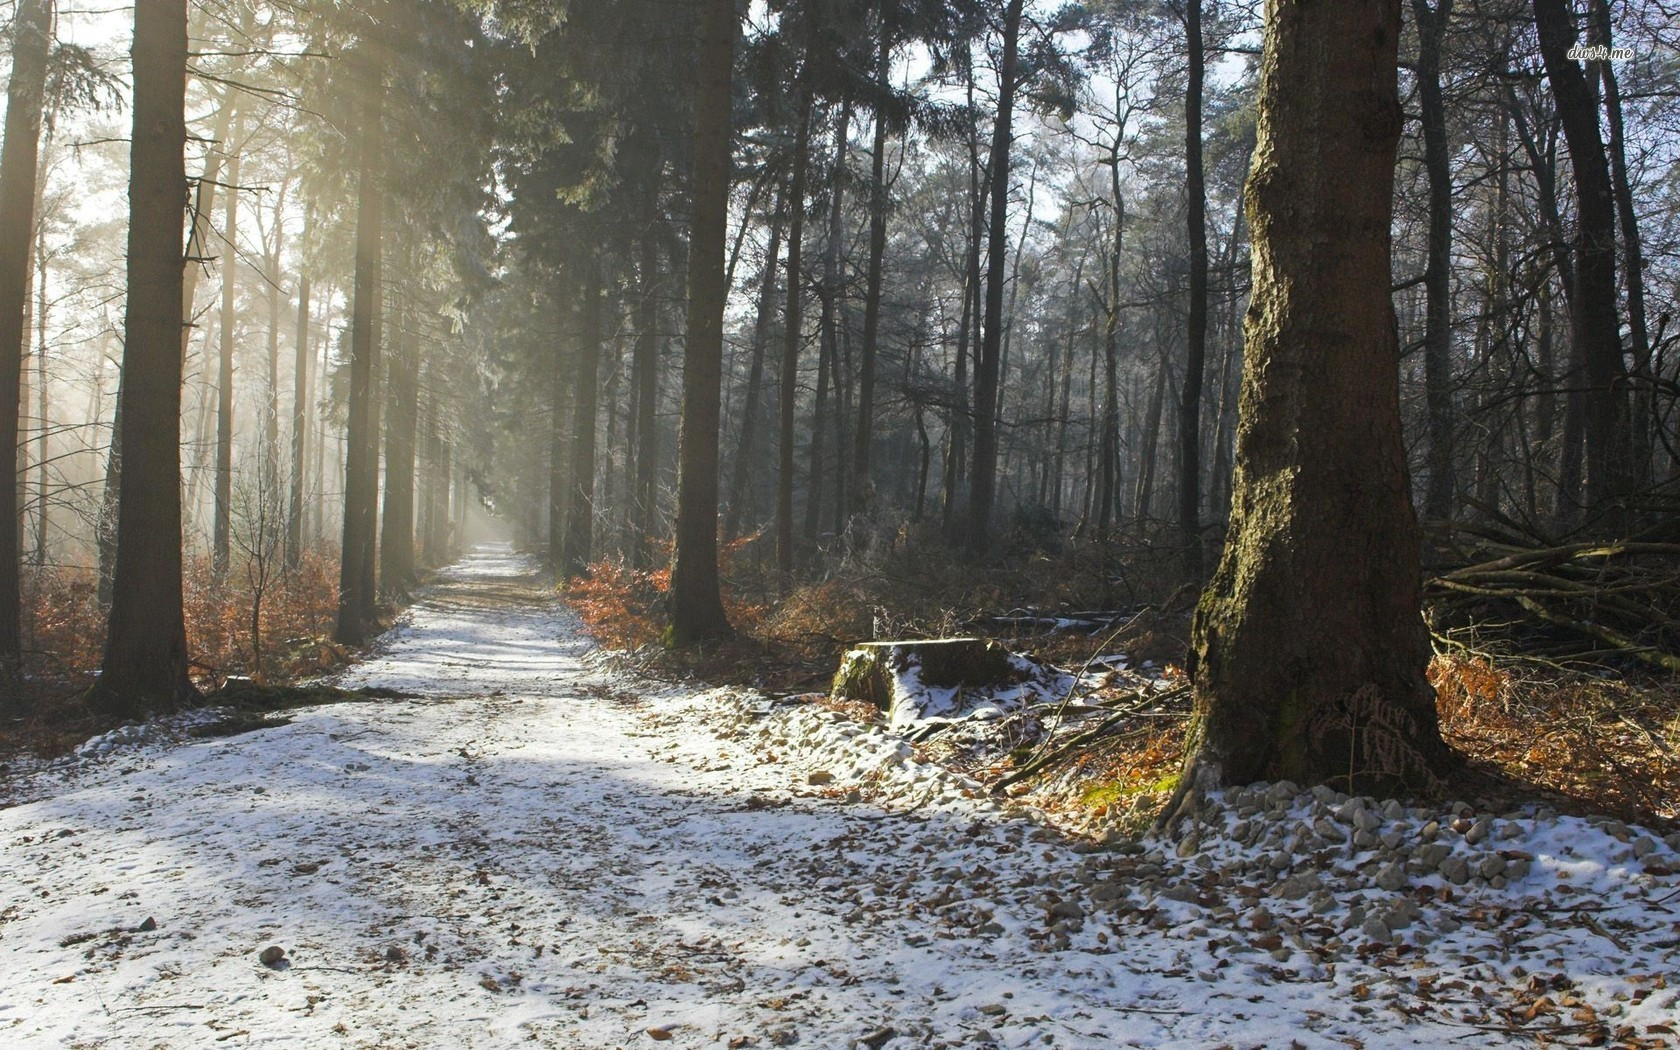 Snowy forest trail wallpaper   Nature wallpapers   18328 1680x1050